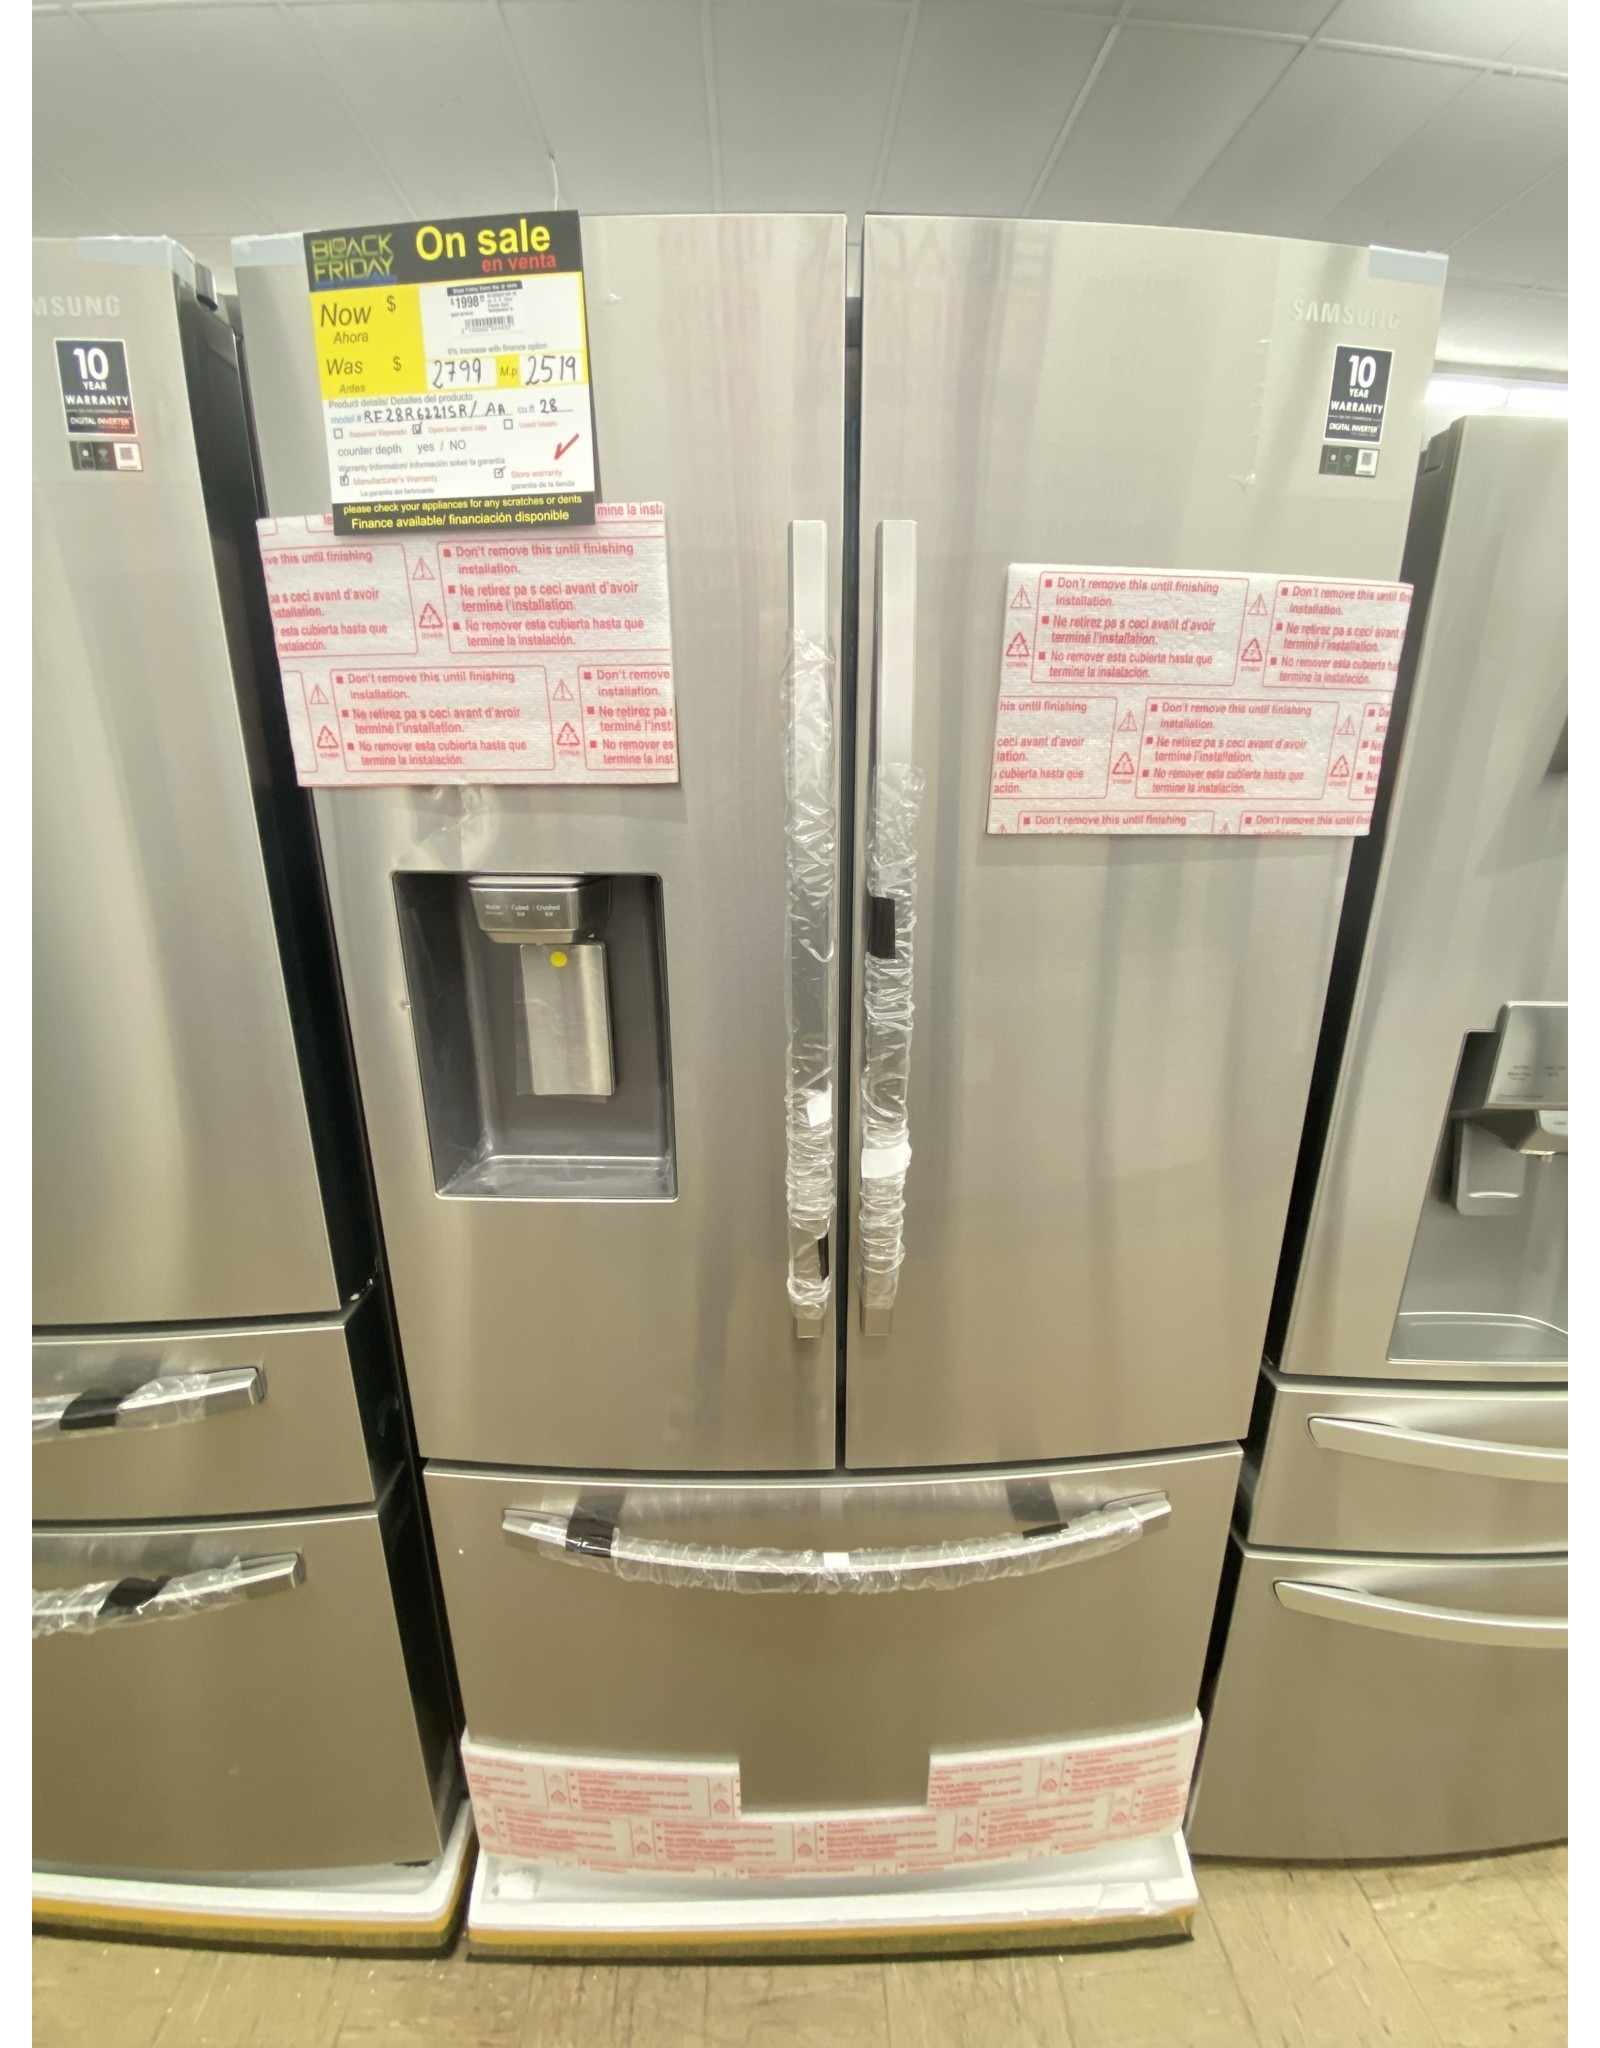 SAMSUNG RF28R6221SR 28 cu. ft. 3-Door French Door Refrigerator in Stainless Steel with AutoFill Water Pitcher